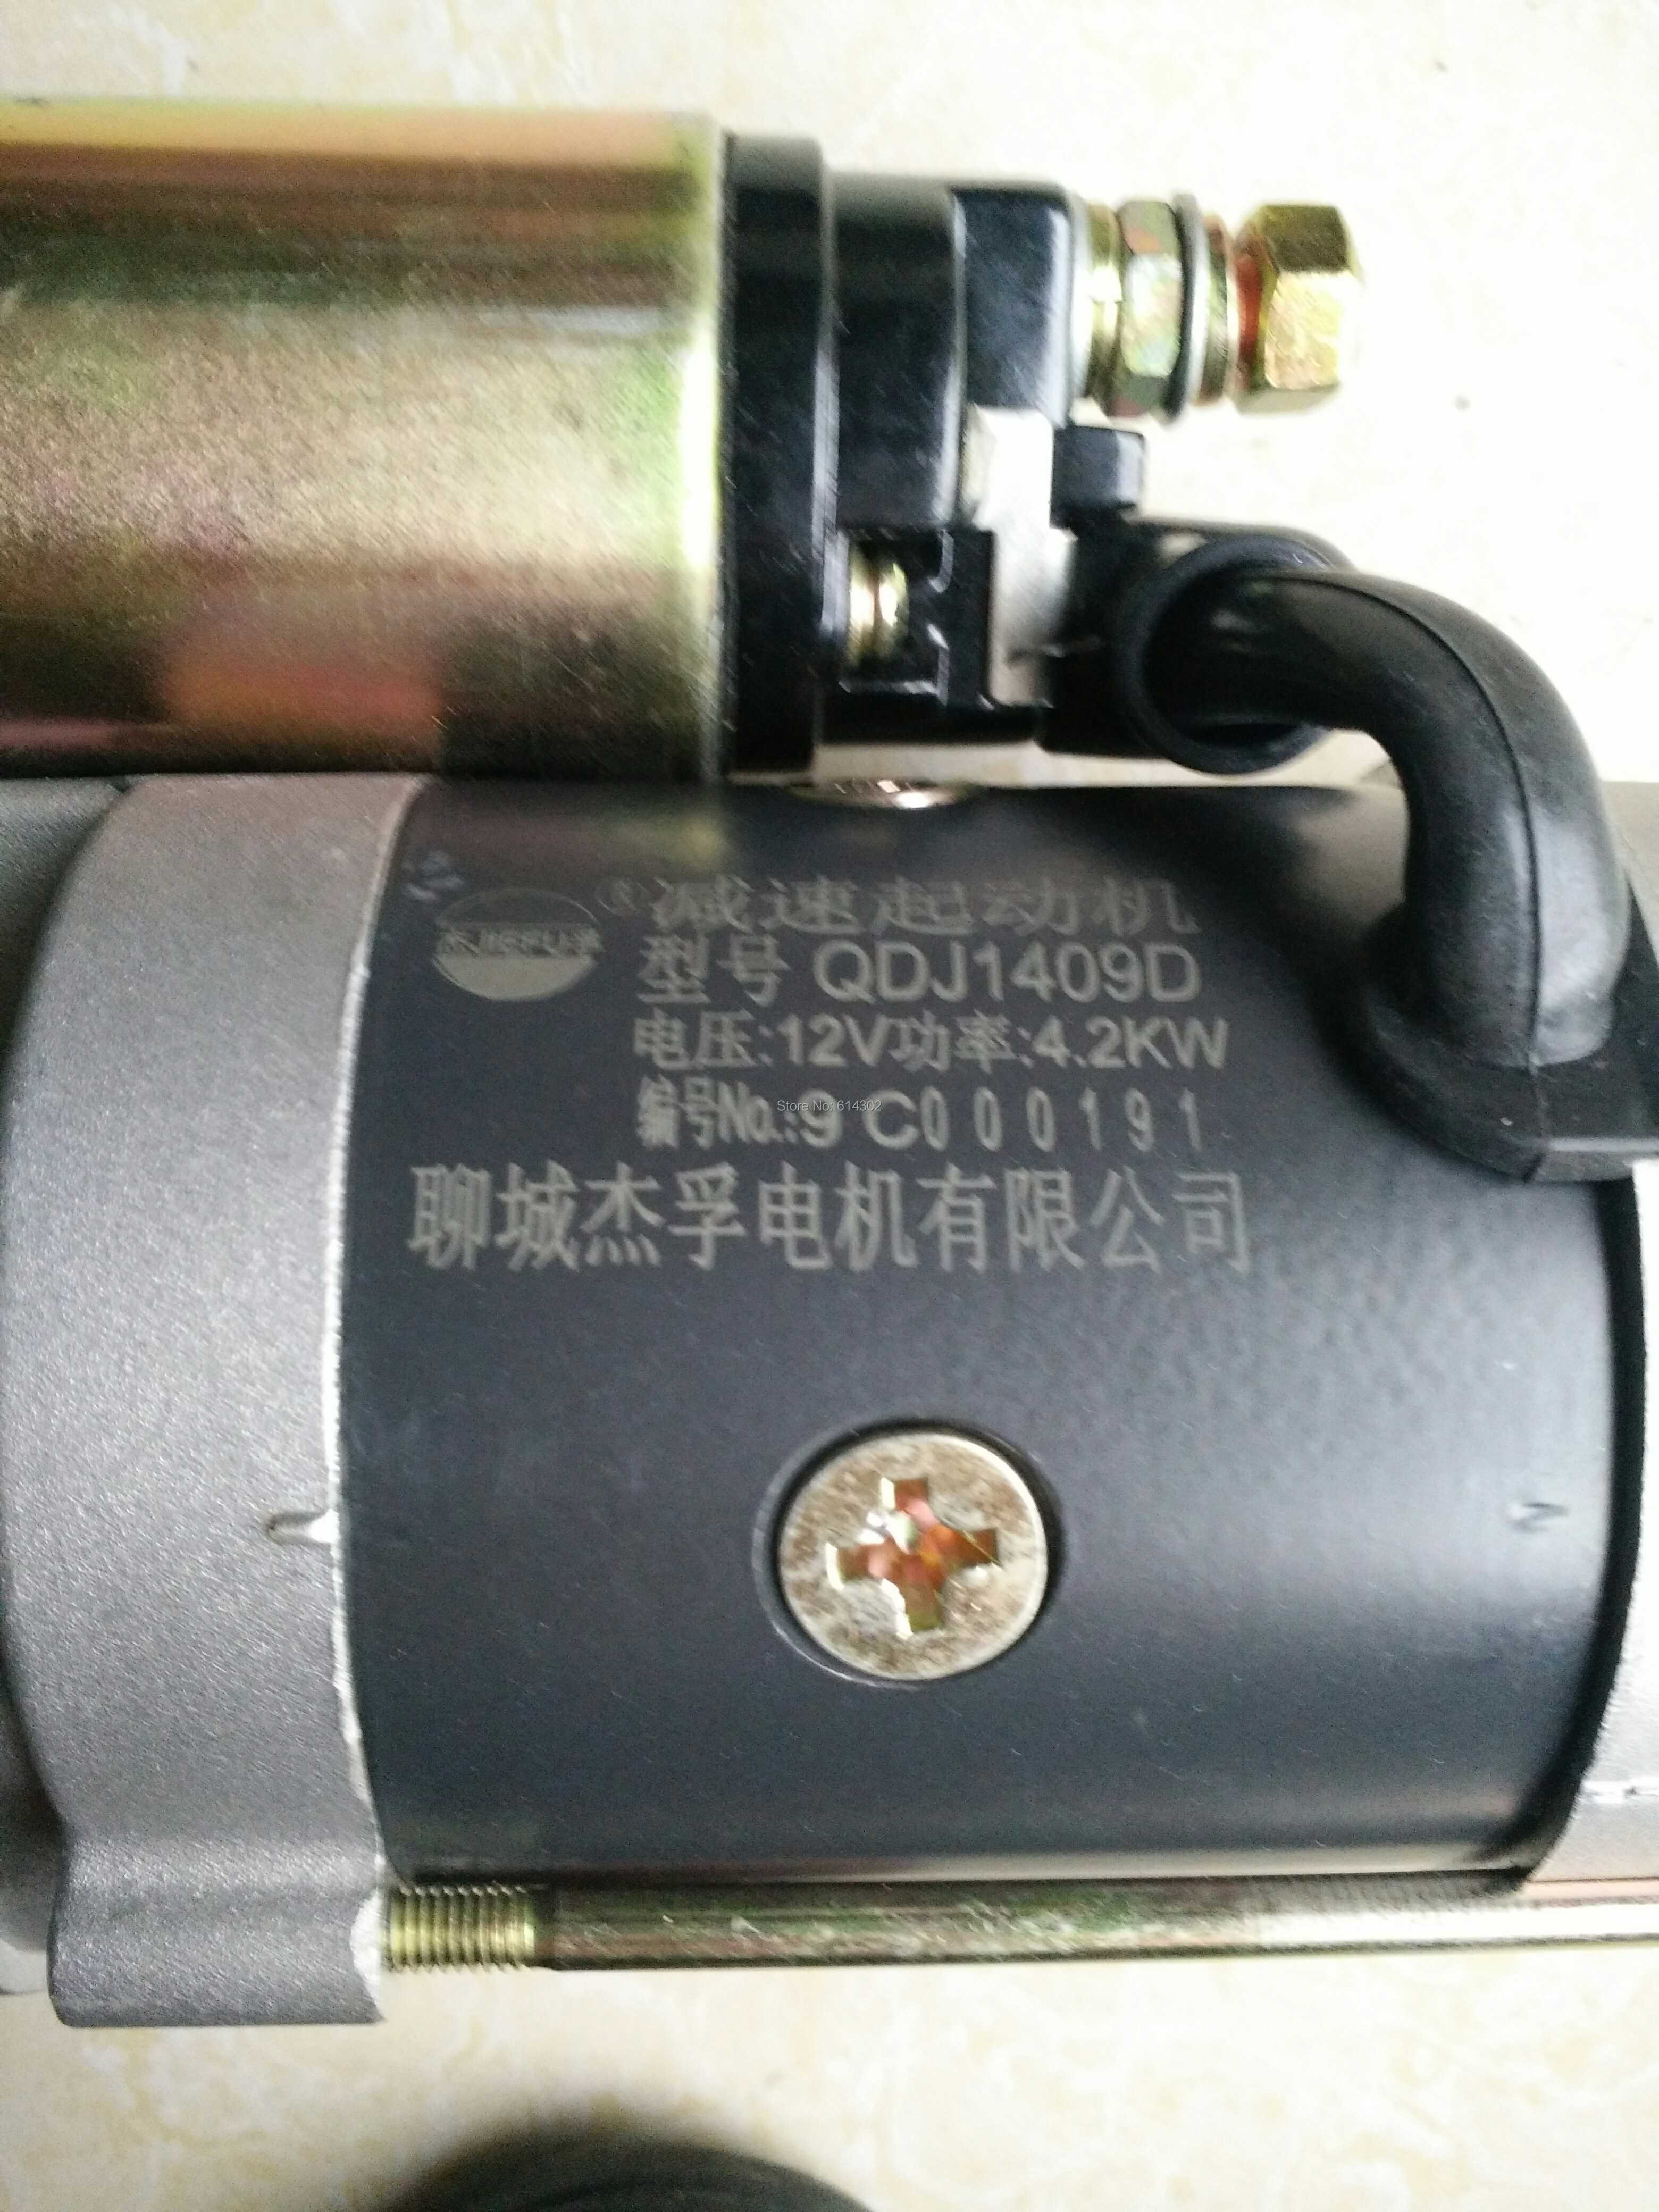 QDJ1409D starter motor for weifang K/ZH4102D/ZD K/ZH4102P/ZP/C series diesel engine spare parts weifang diesel generator parts